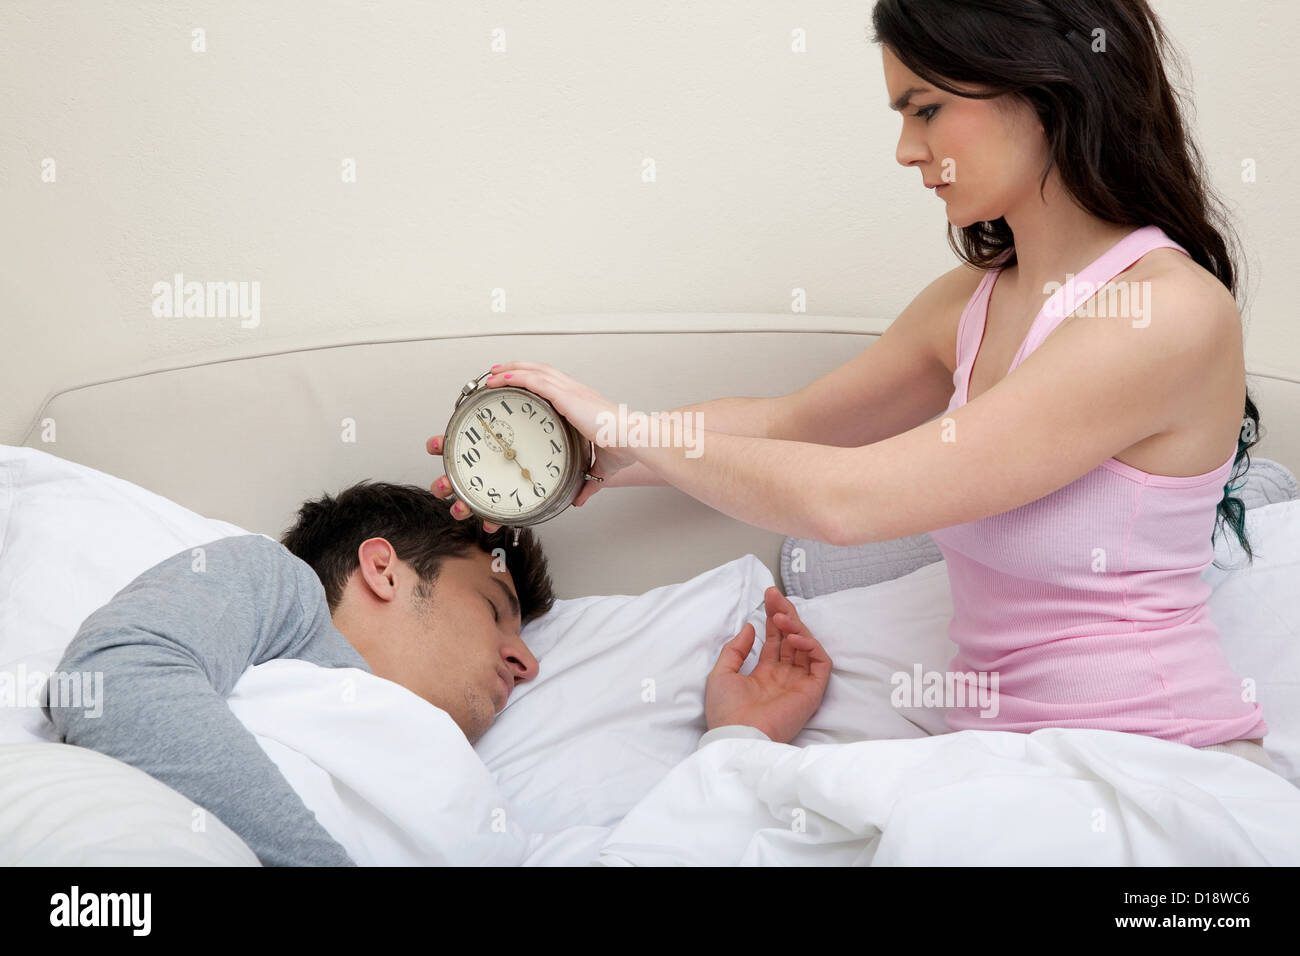 Couple in bed, woman holding alarm clock near mans head - Stock Image